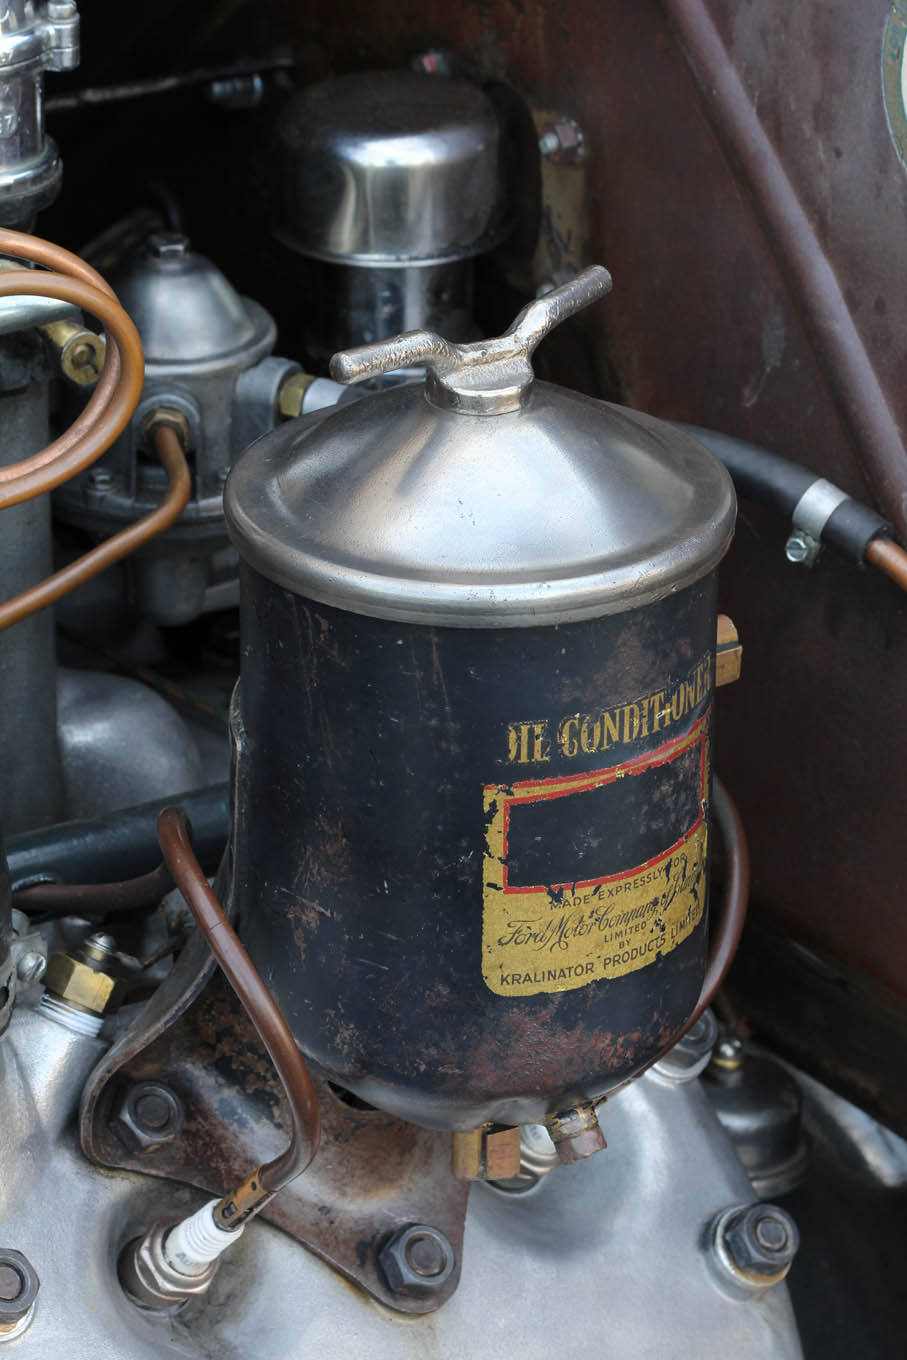 Steve nickel plated the top of the vintage oil filter (known as a Kralinator Oil Conditioner) in, of all things, a Crock Pot. The process involved vinegar, some guitar strings, and a 6-volt battery!